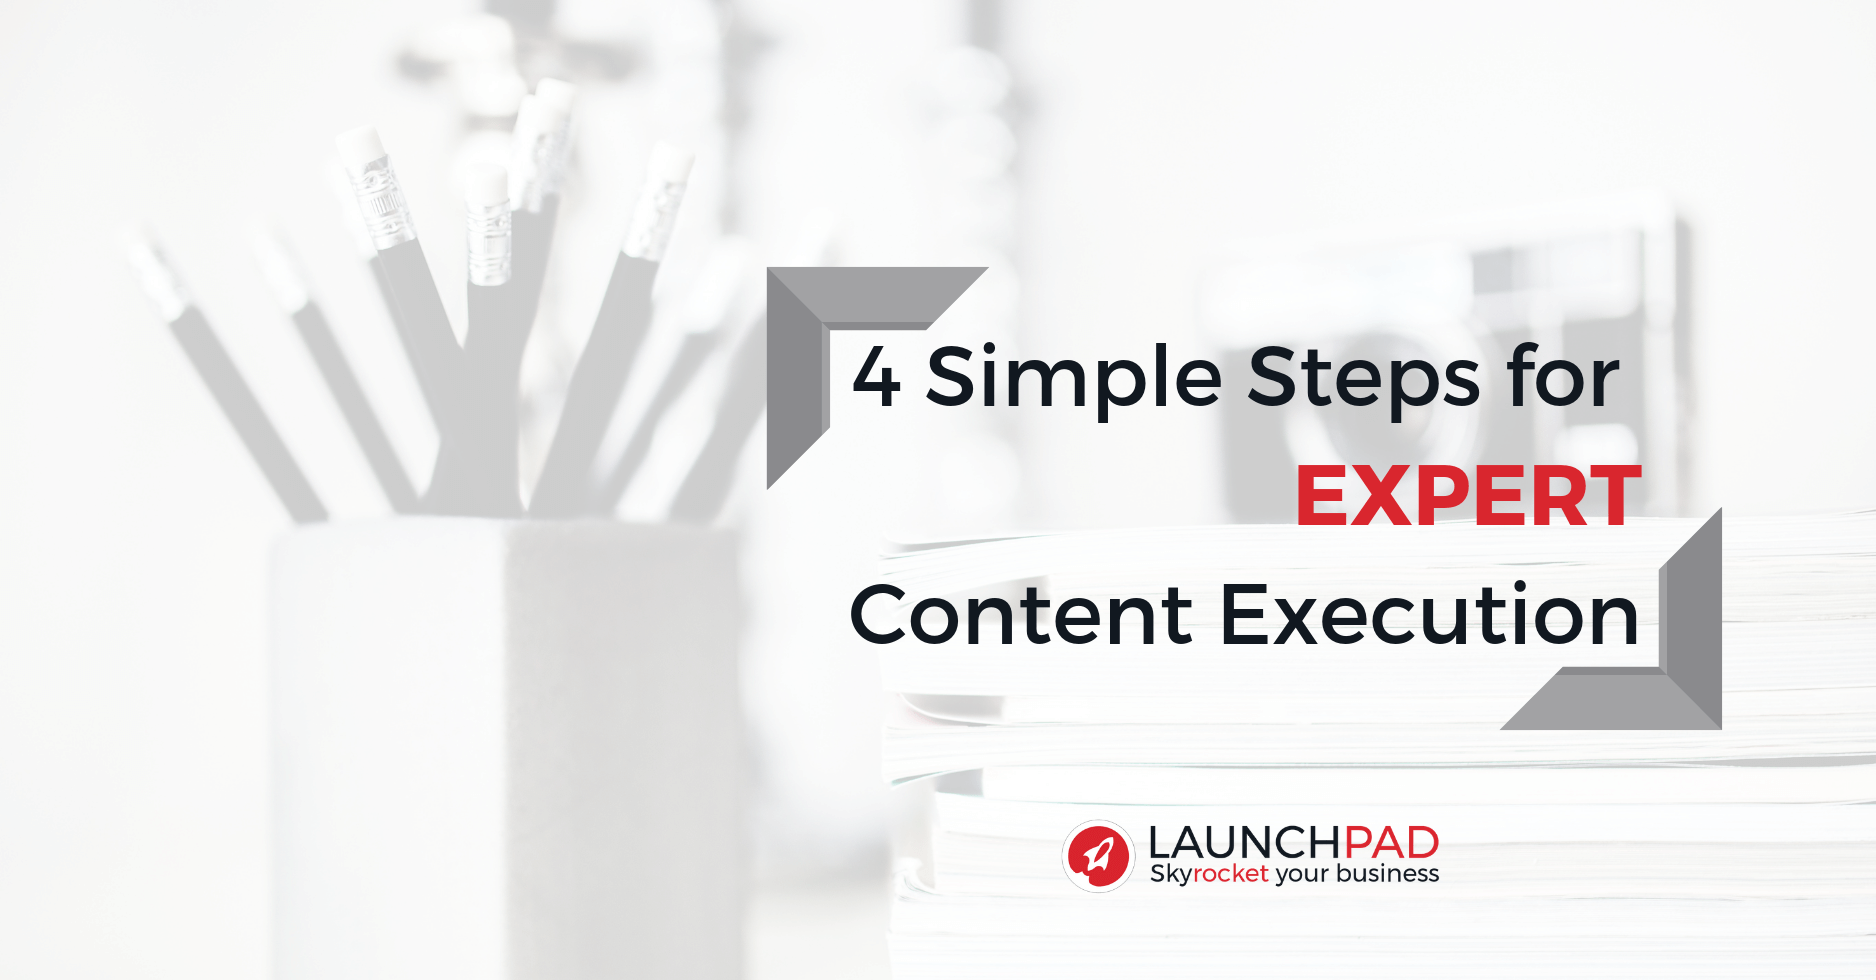 4 Simple Steps to Easy Content Execution